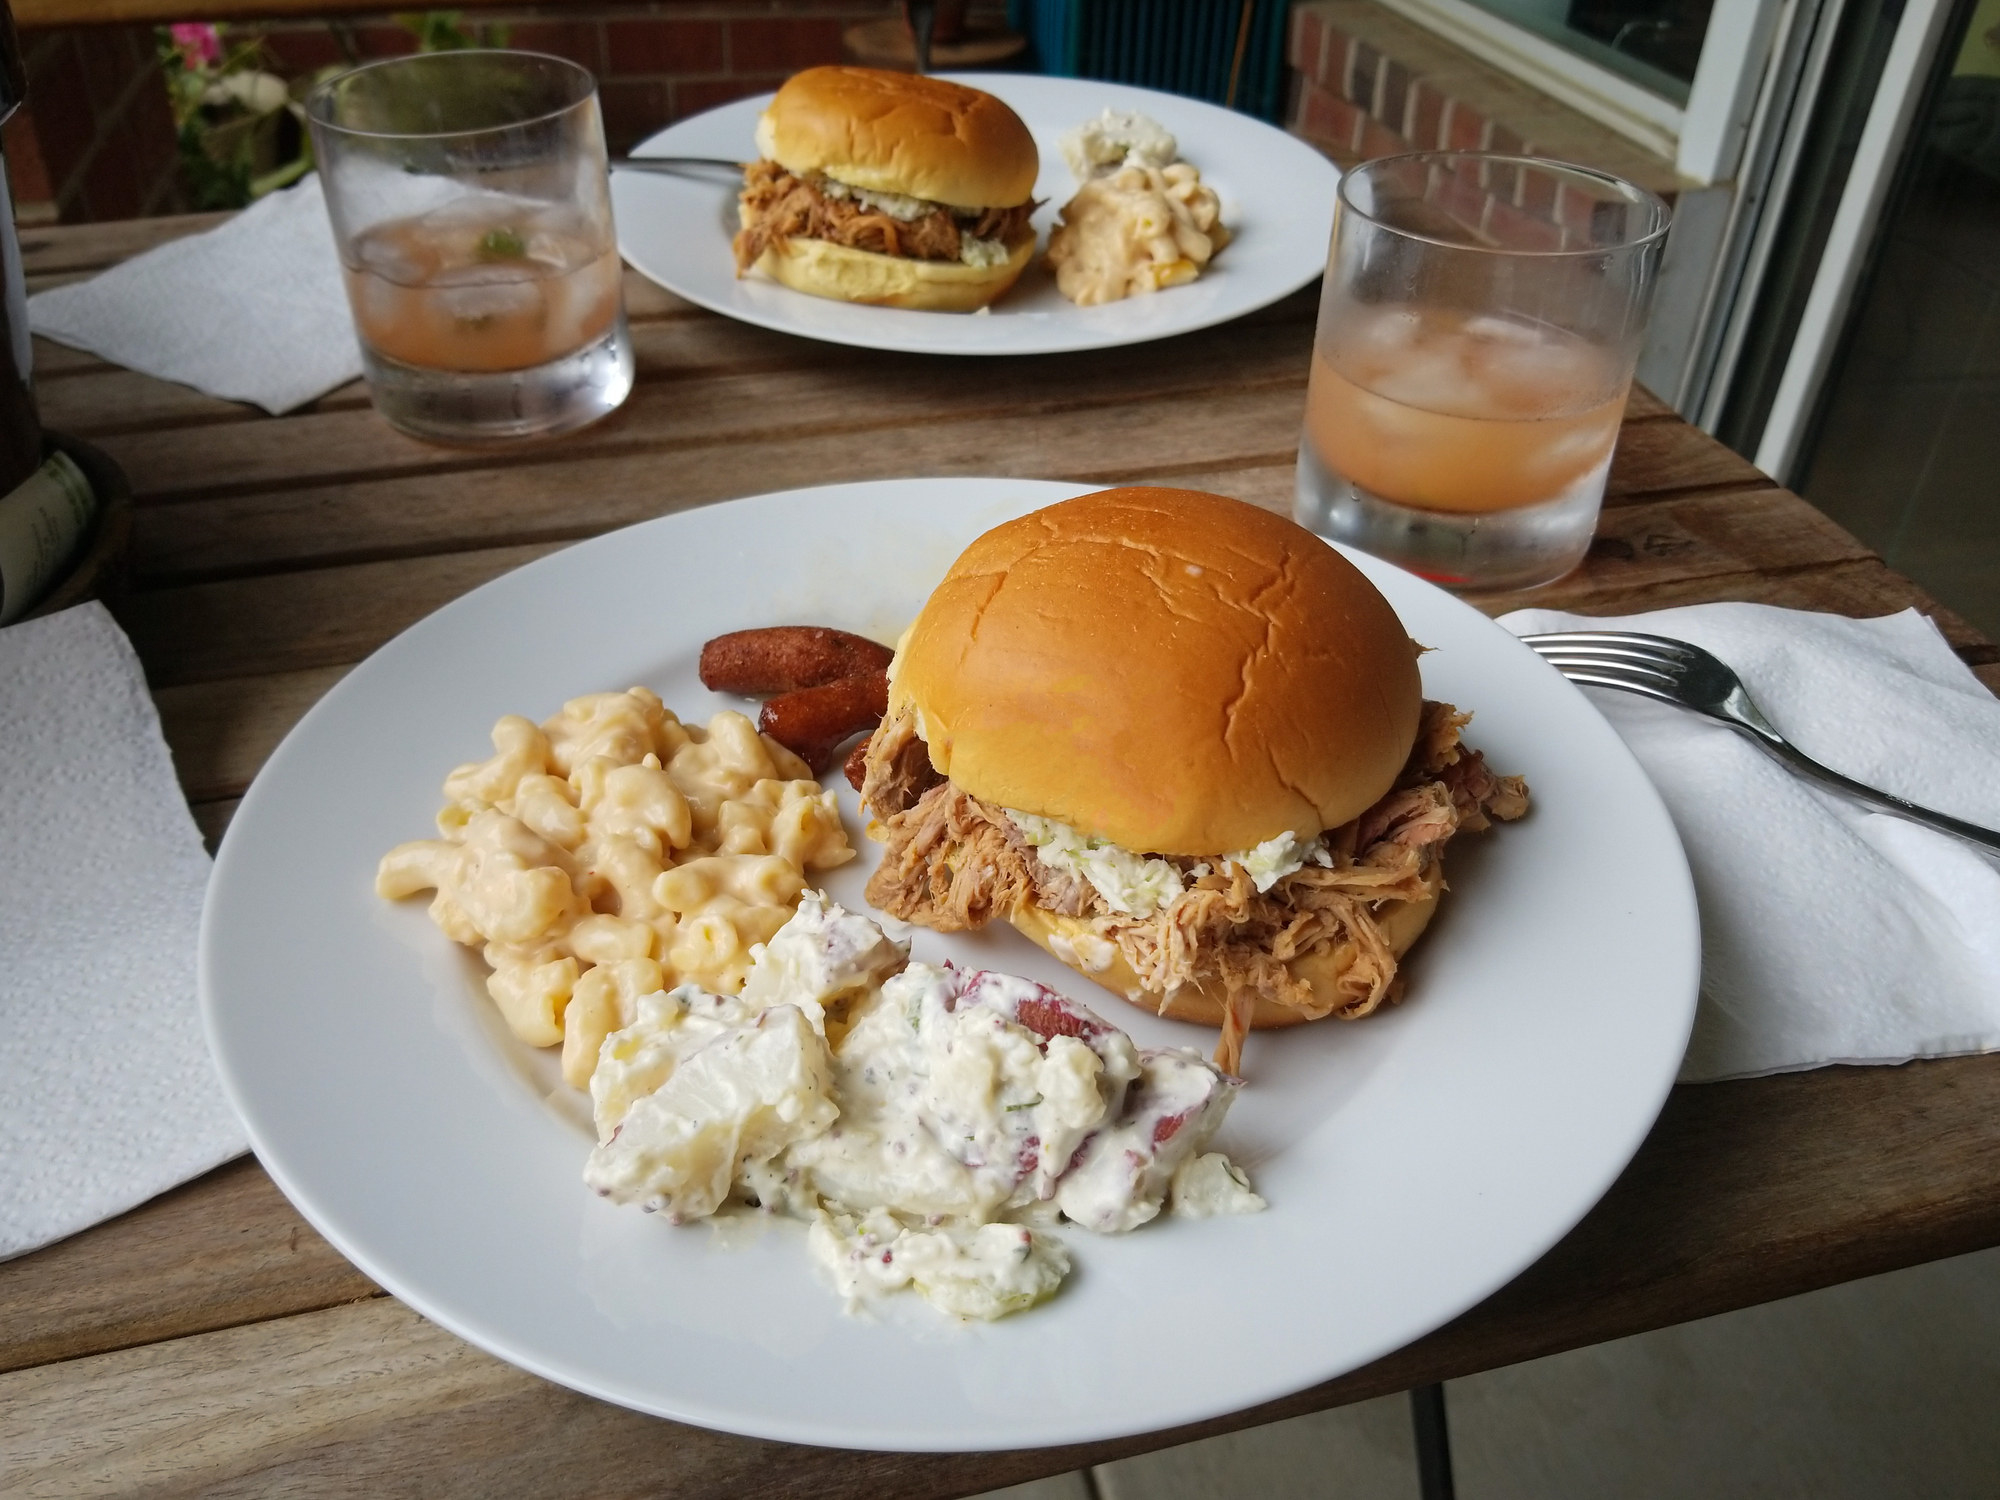 A pulled pork sandwich with slaw and sides of potato salad and mac 'n' cheese.